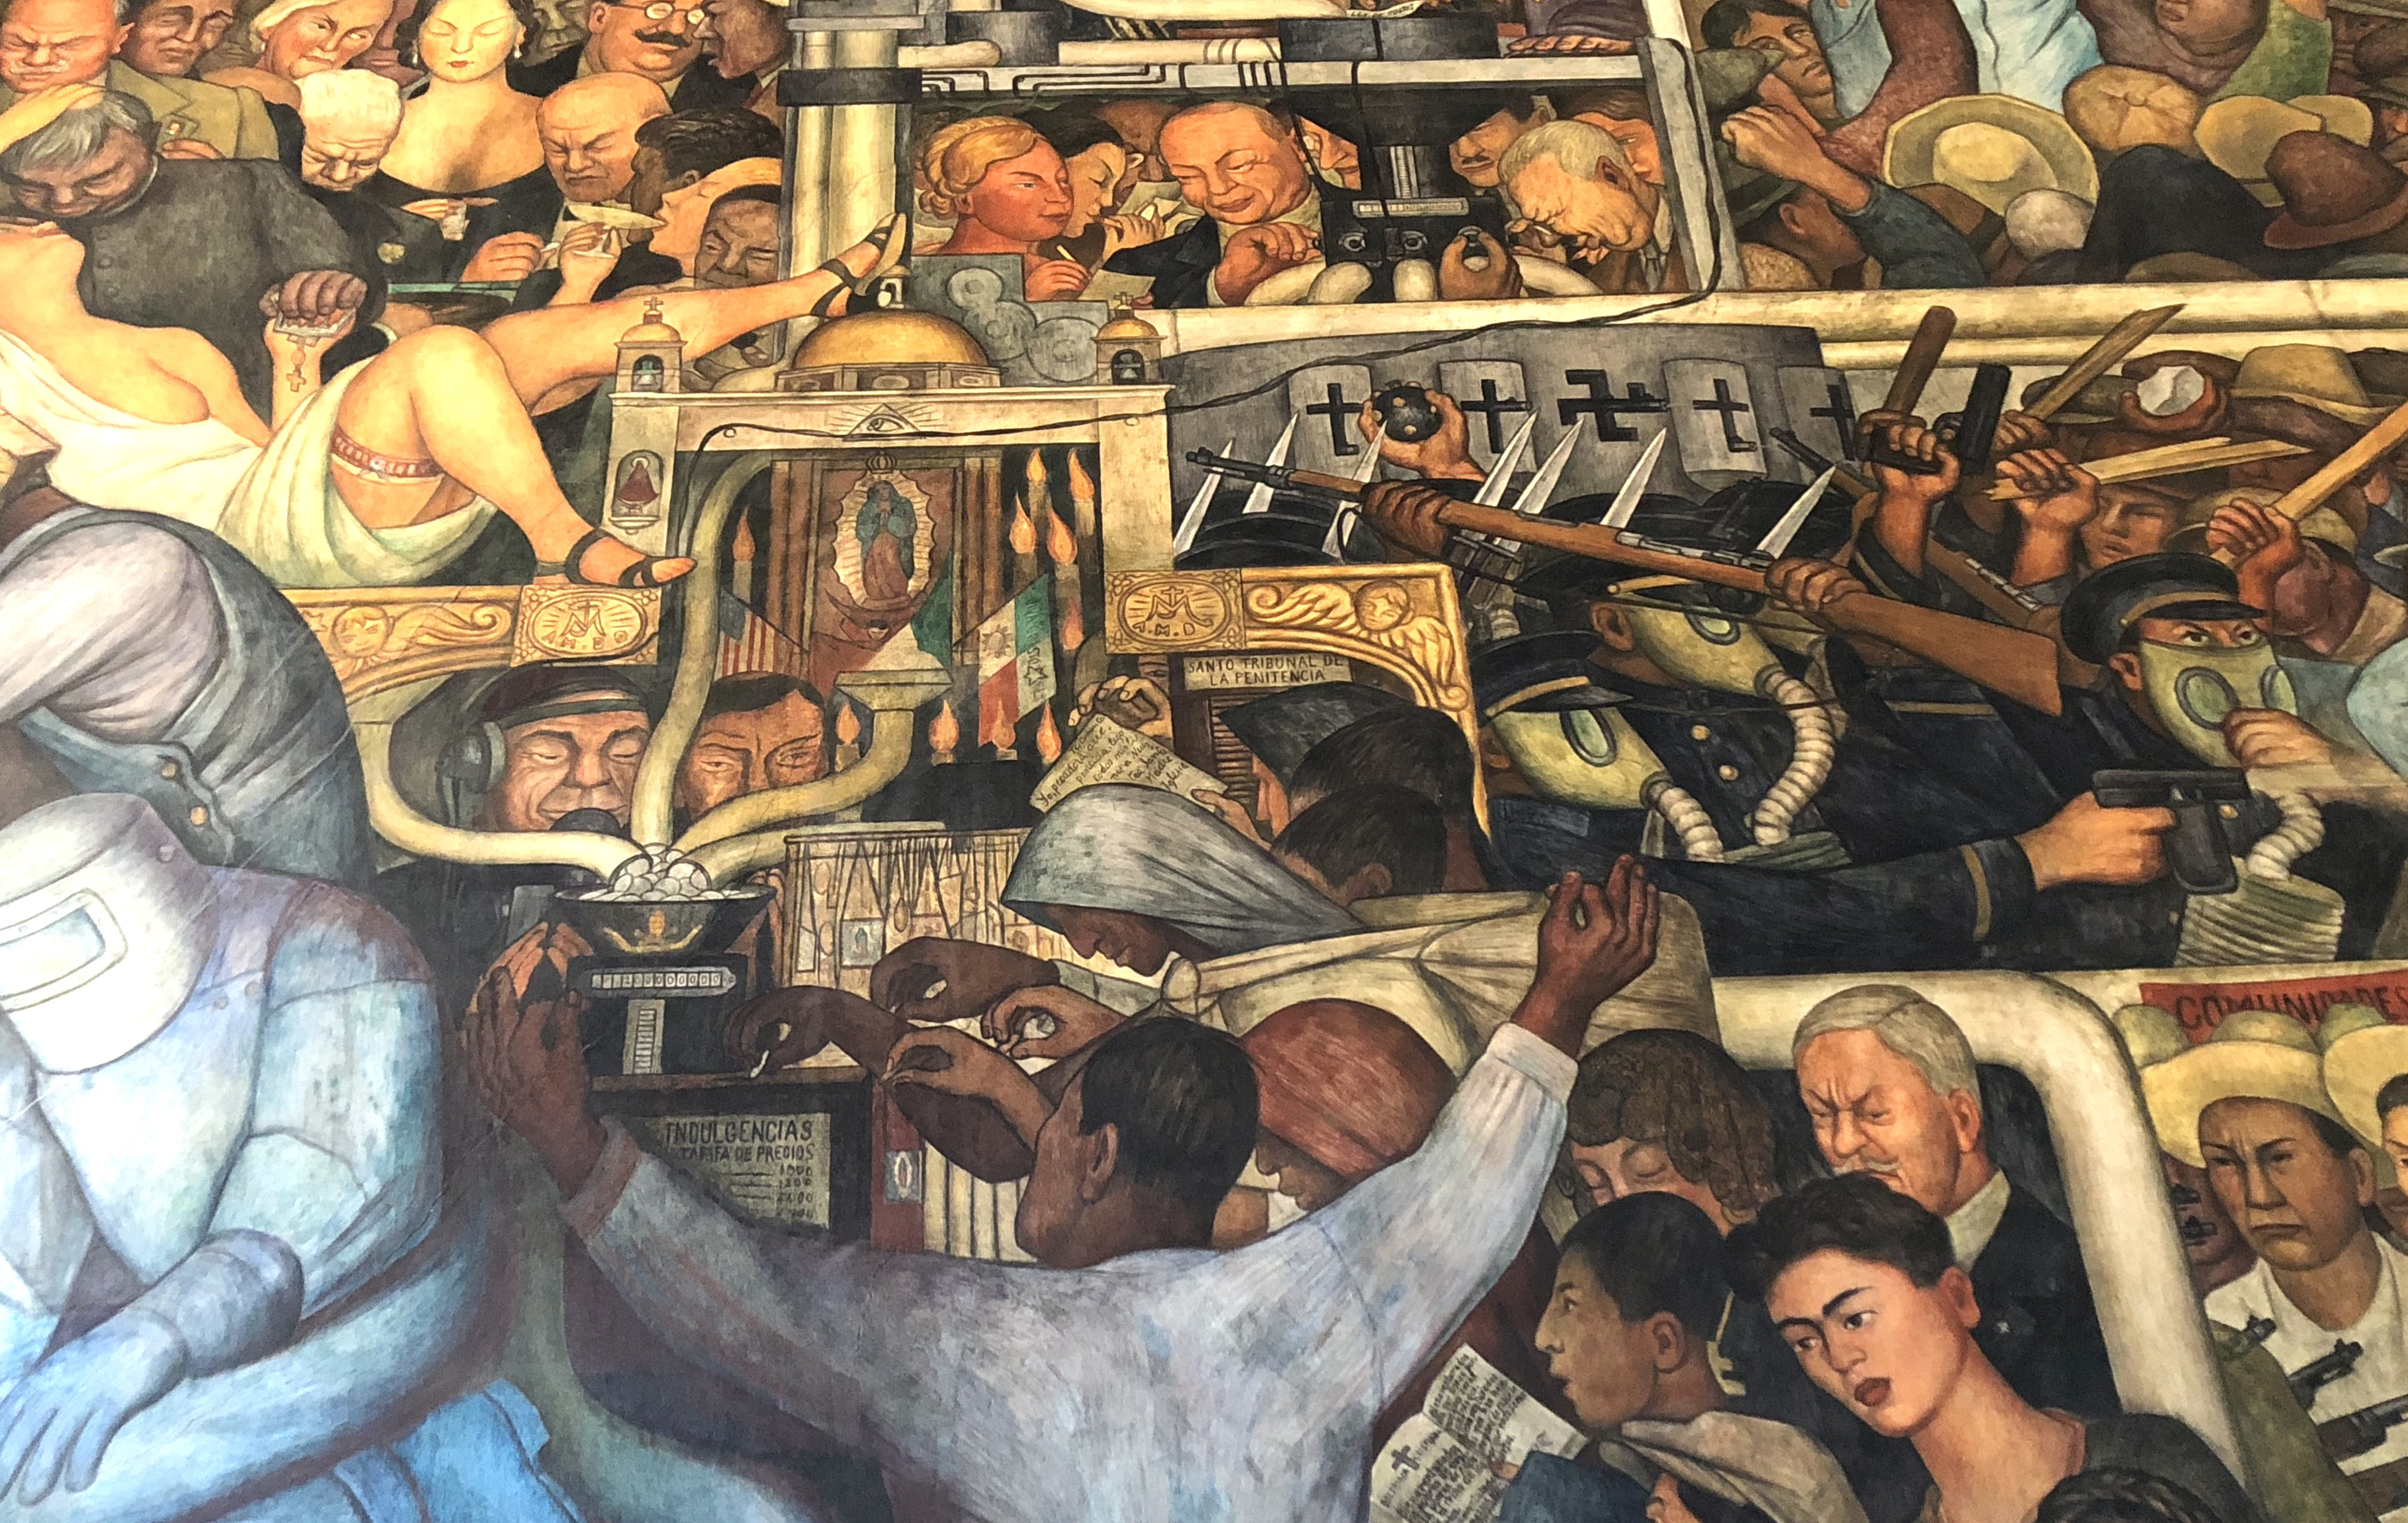 See Some of the Most Iconic Murals